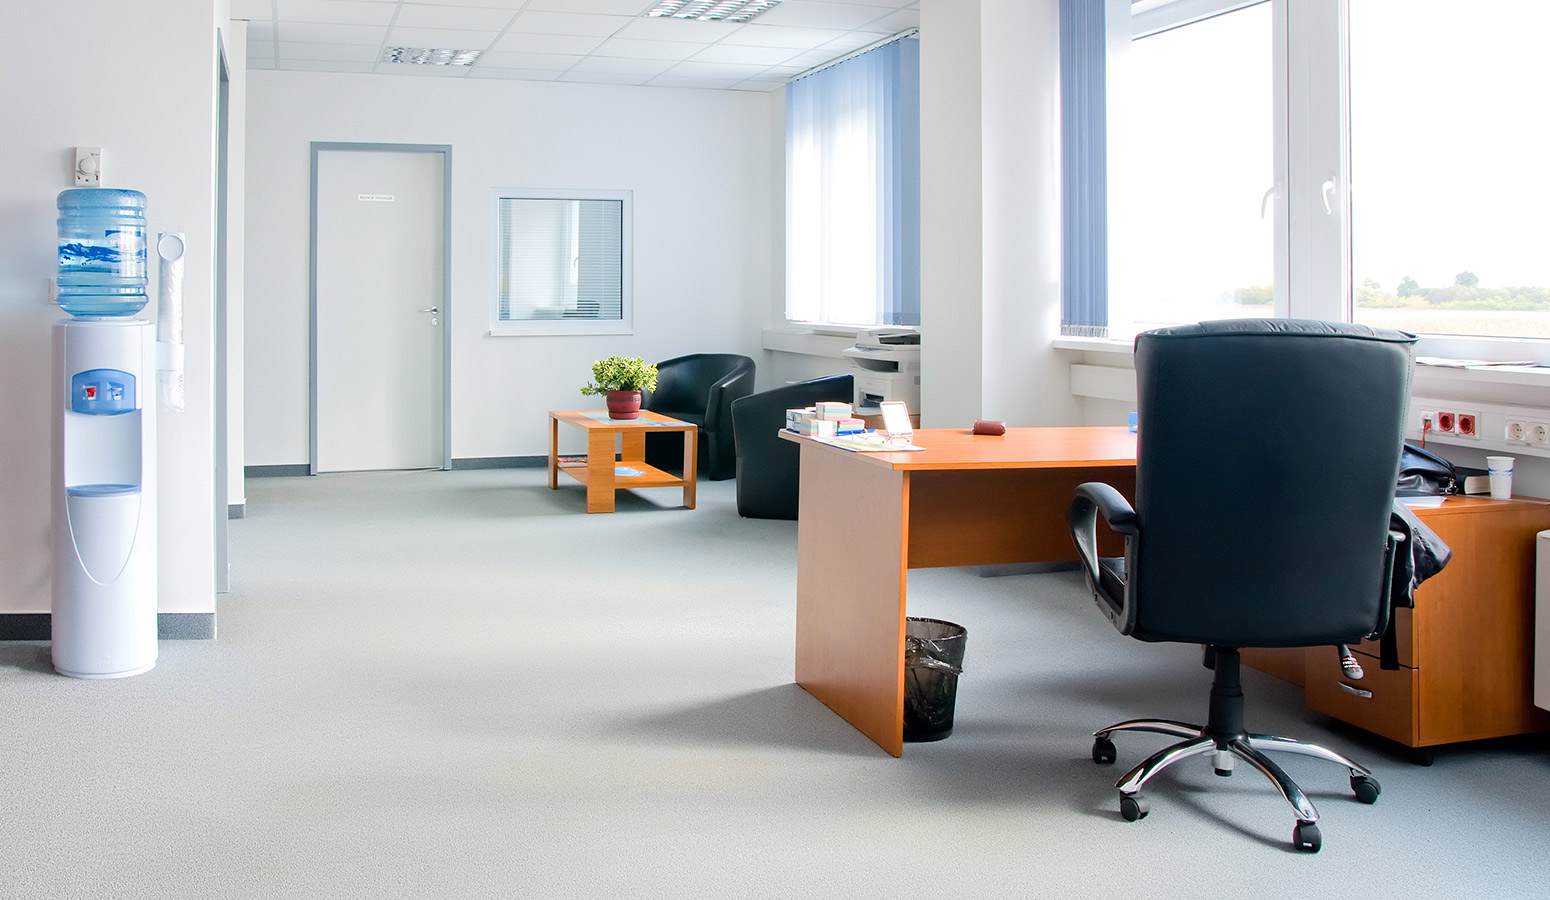 office cleaning services in kuala lumpur malaysia part